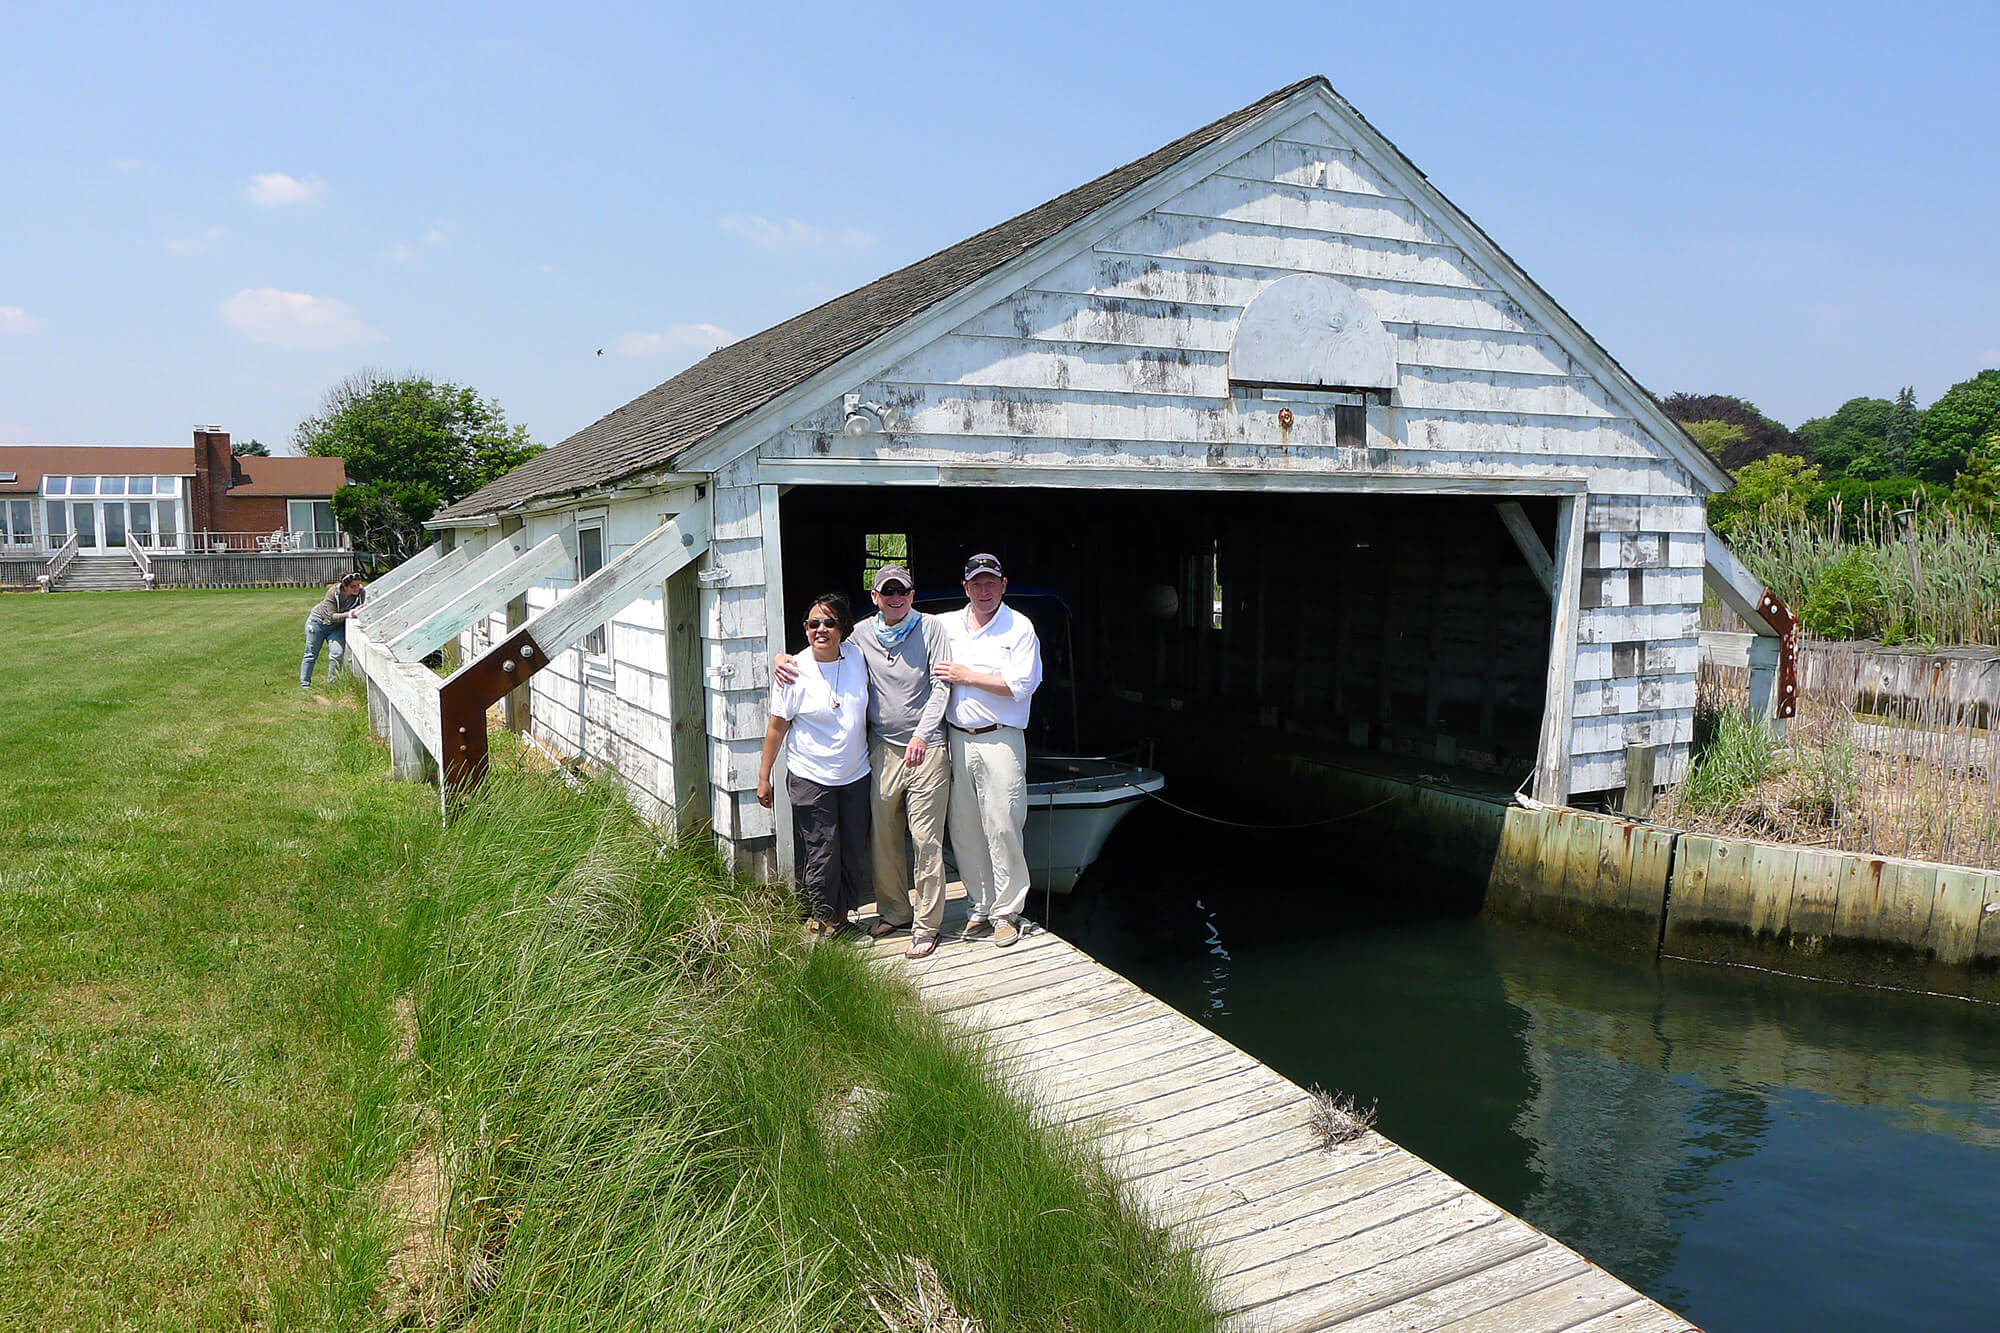 Capt. Levison, Chef Lo, Host Ambrose at the Boathouse on Moriches bay